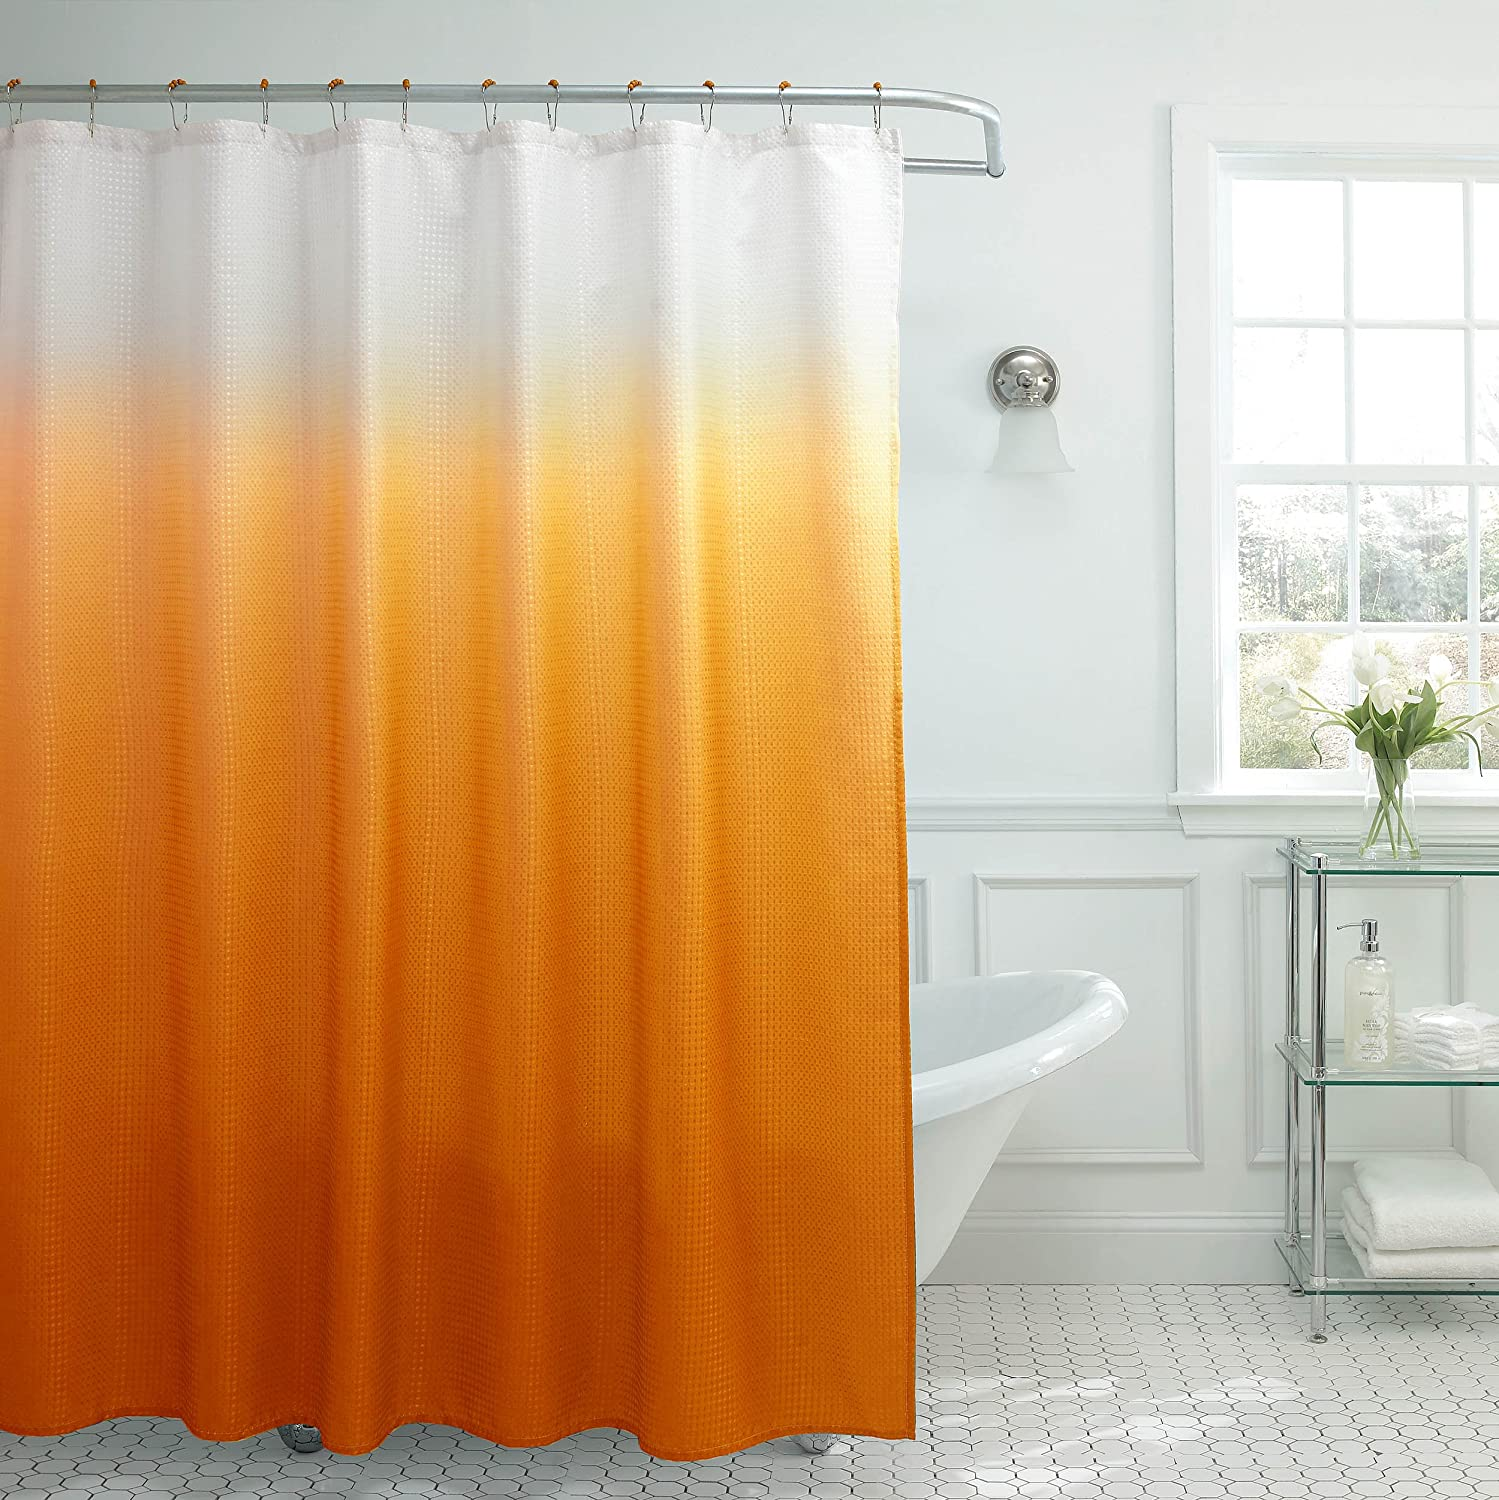 The 5 Best Shower Curtains: Reviews & Buying Guide 16